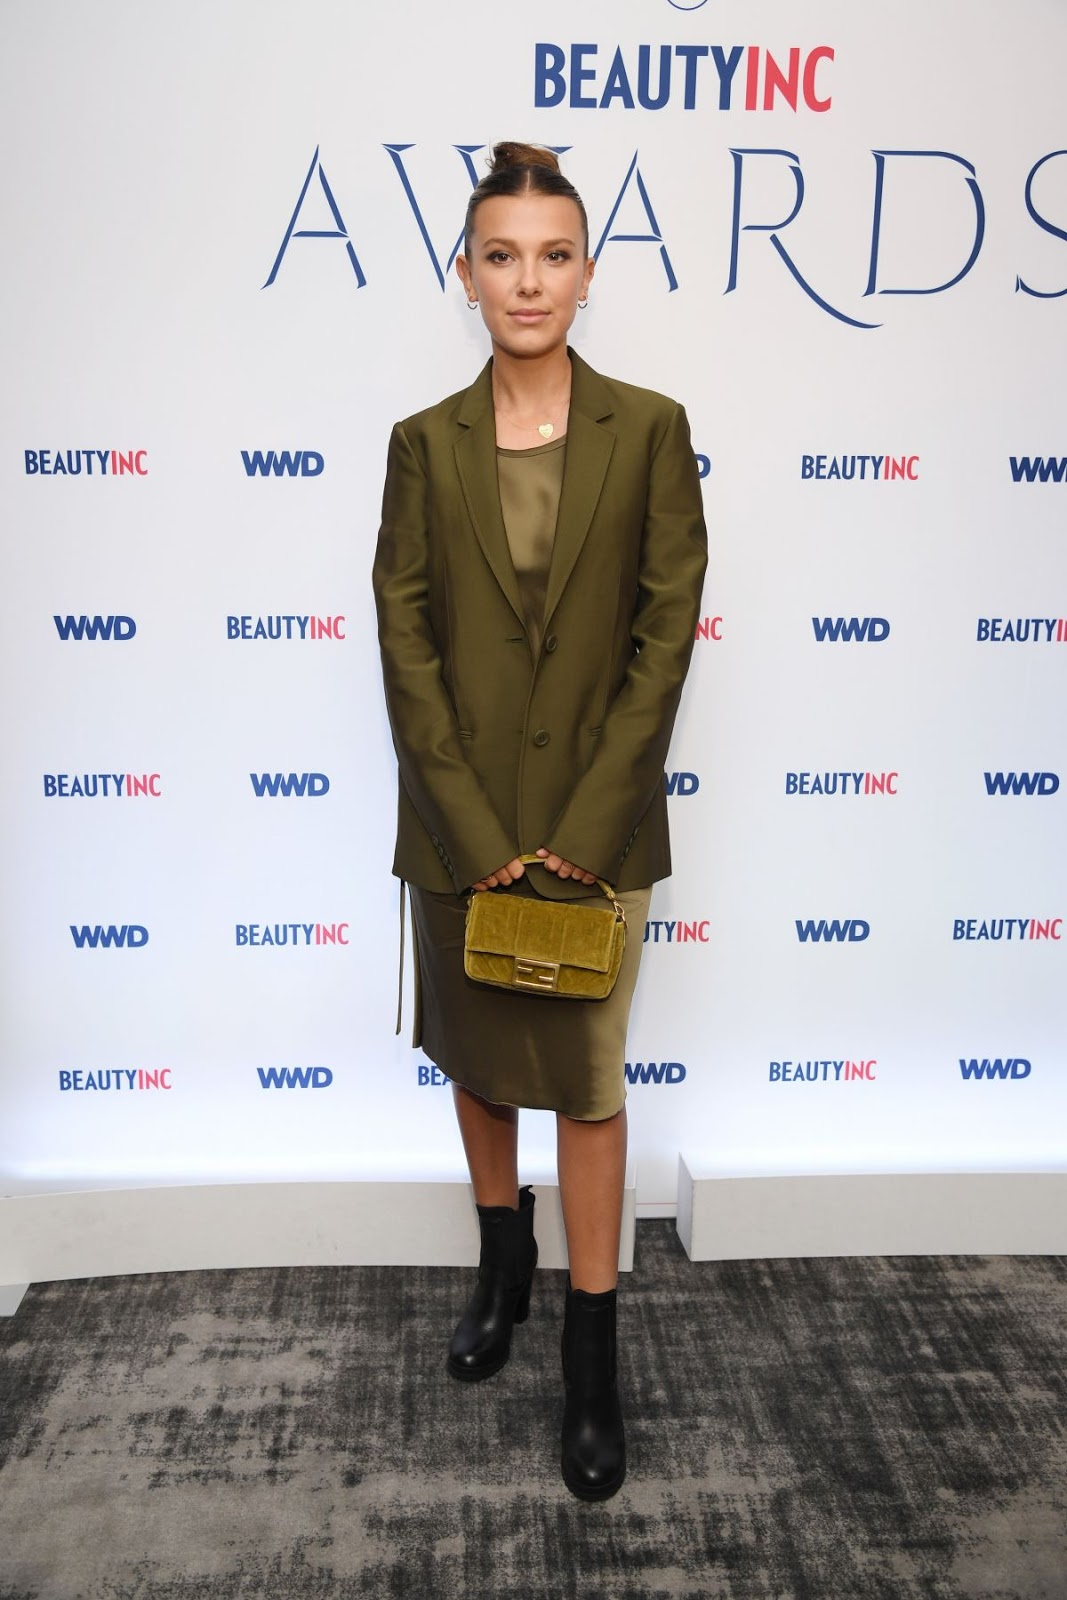 Millie Bobby Brown goes demure in olive green ensemble at the WWD Beauty Awards